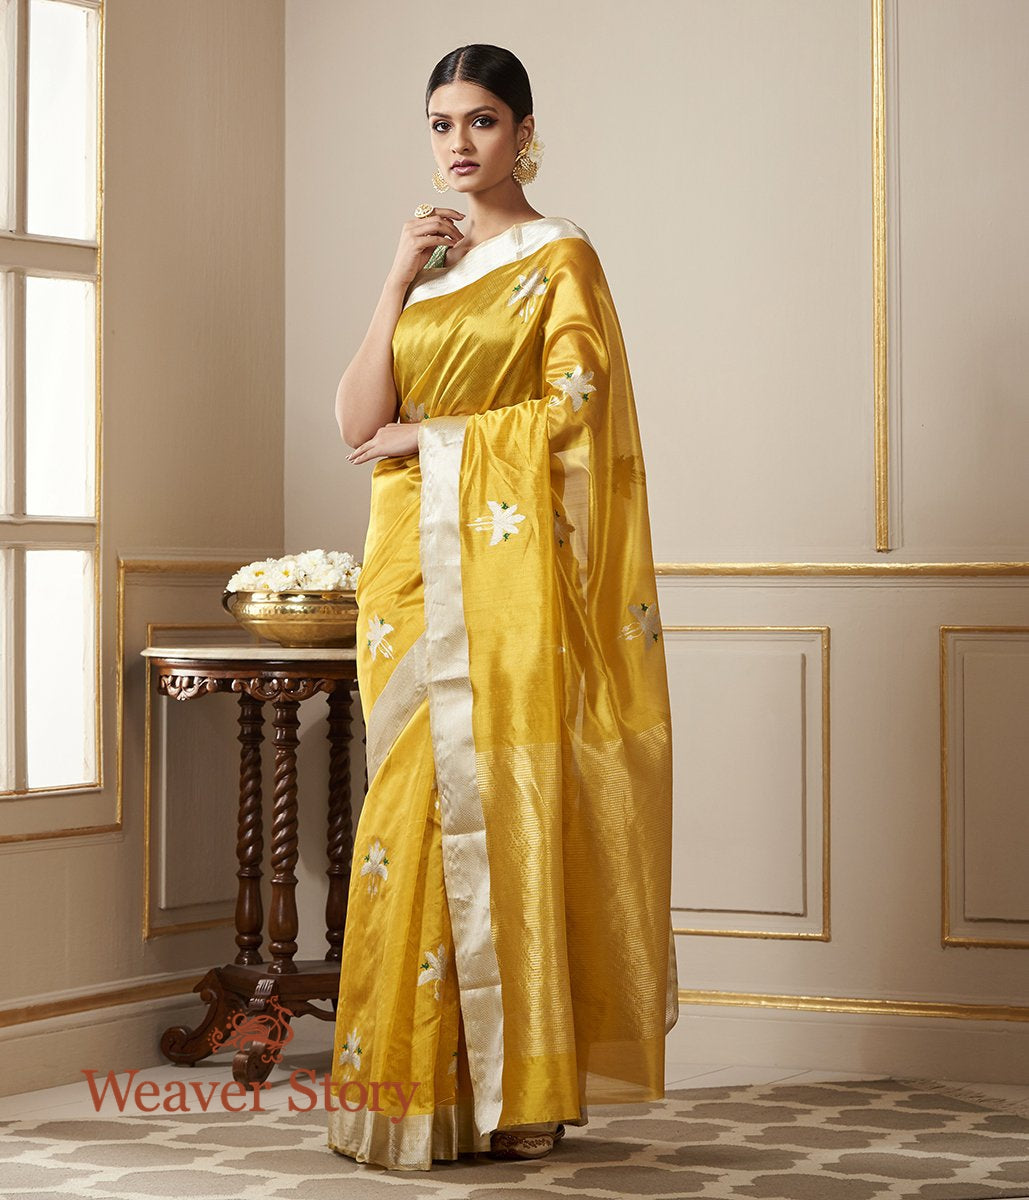 Handwoven Turmeric Yellow Chanderi Silk Saree with Birds on a Tree